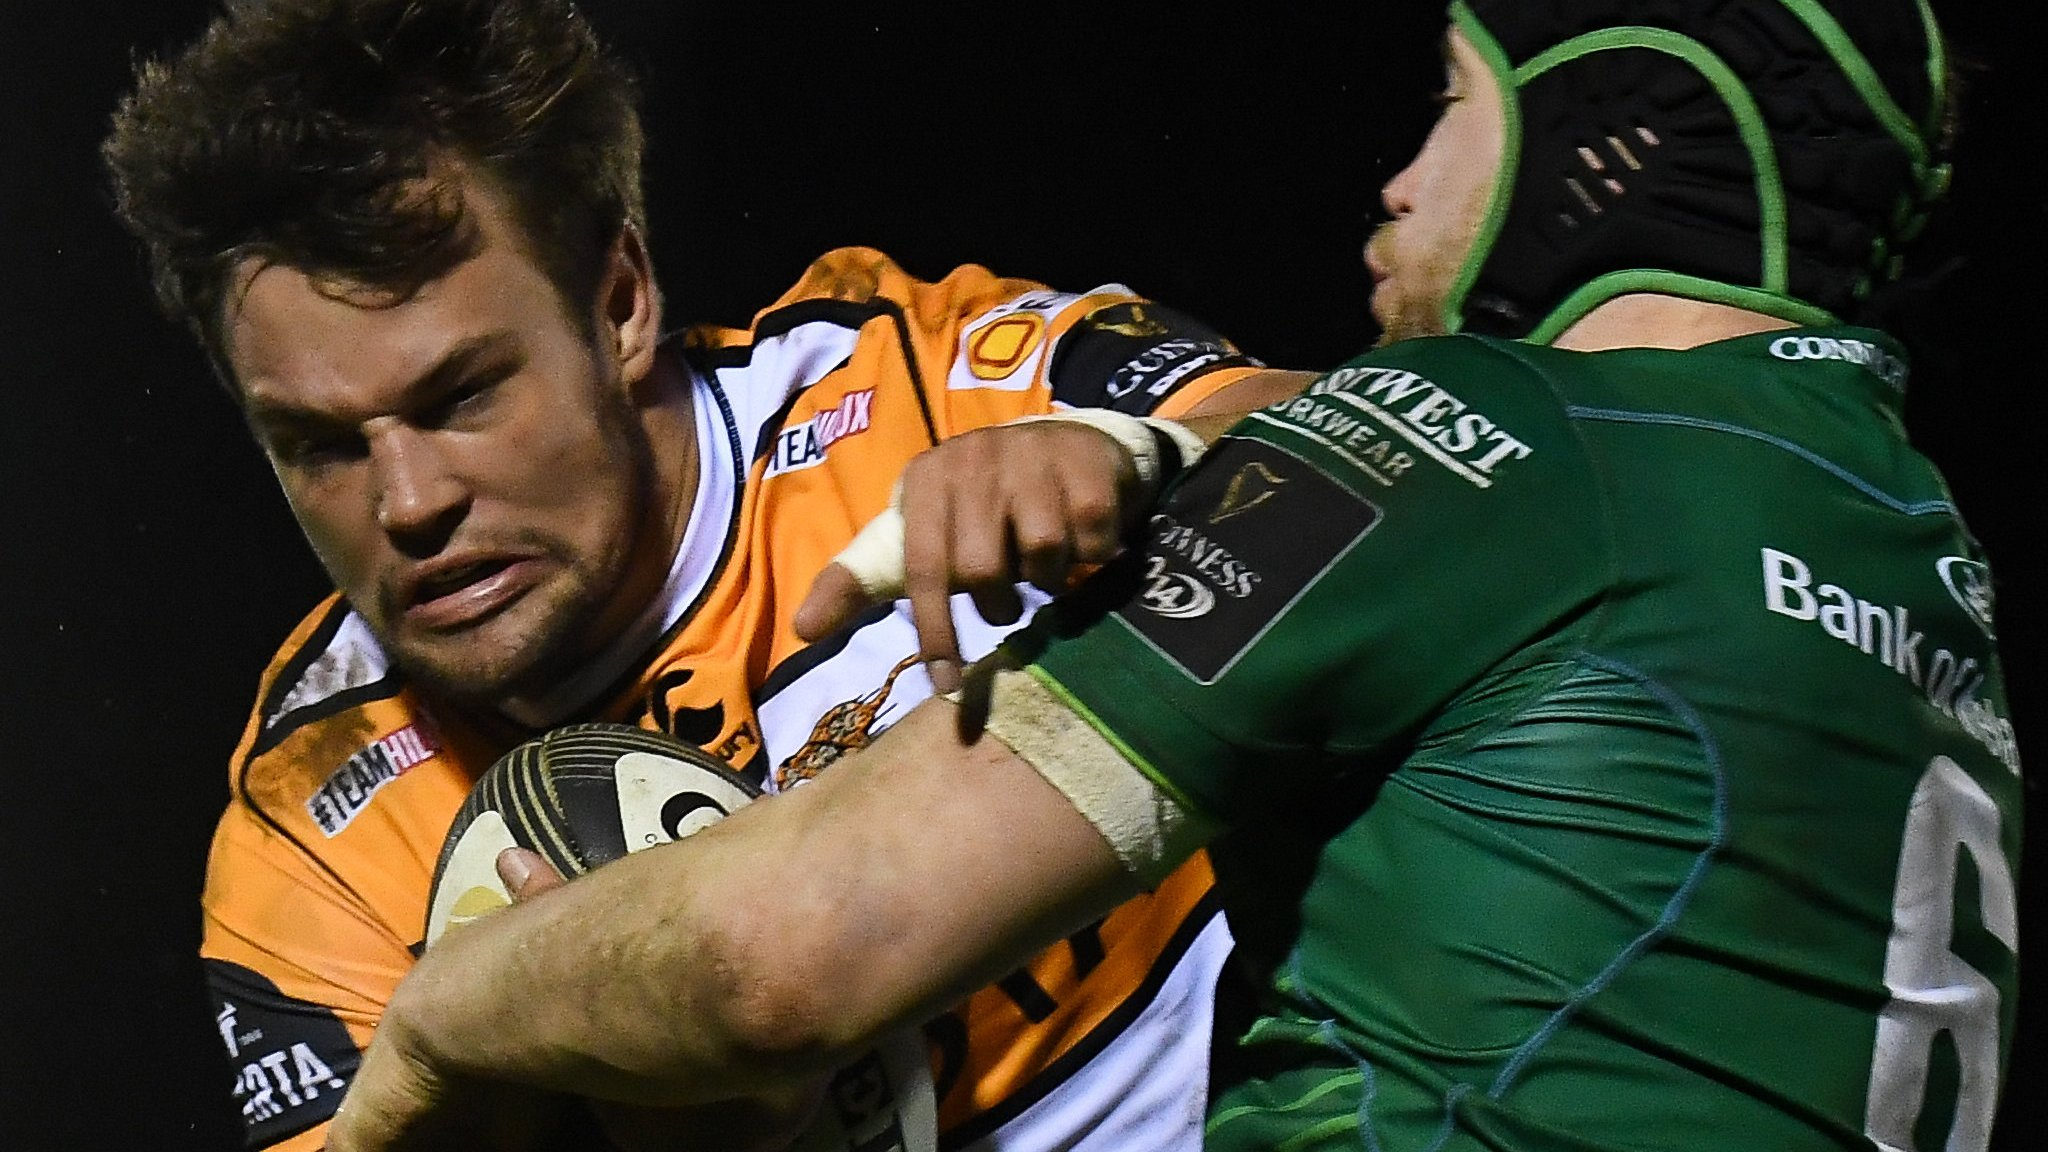 Player banned for 13 weeks for 'clearing nose' on opponent's face